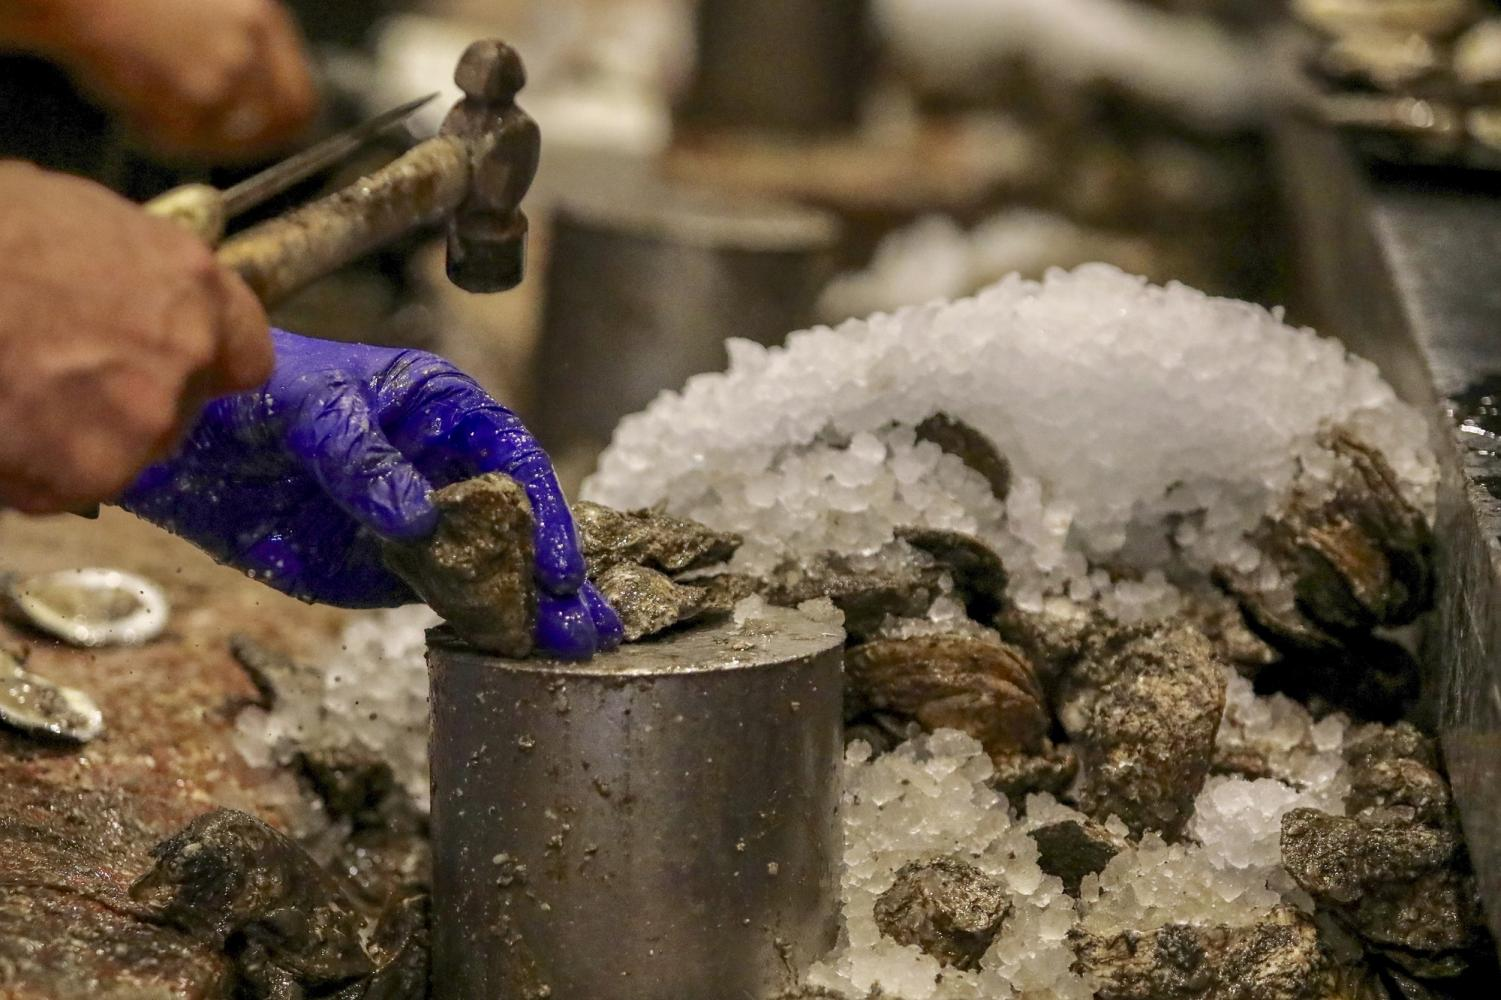 Shuckers crack open oysters at Drago's Seafood Restaurant in Metairie, Louisiana. The restaurant business is one of the industries impacted by the Bonne Carre Spillway openings this year. Photo credit: Andres Fuentes